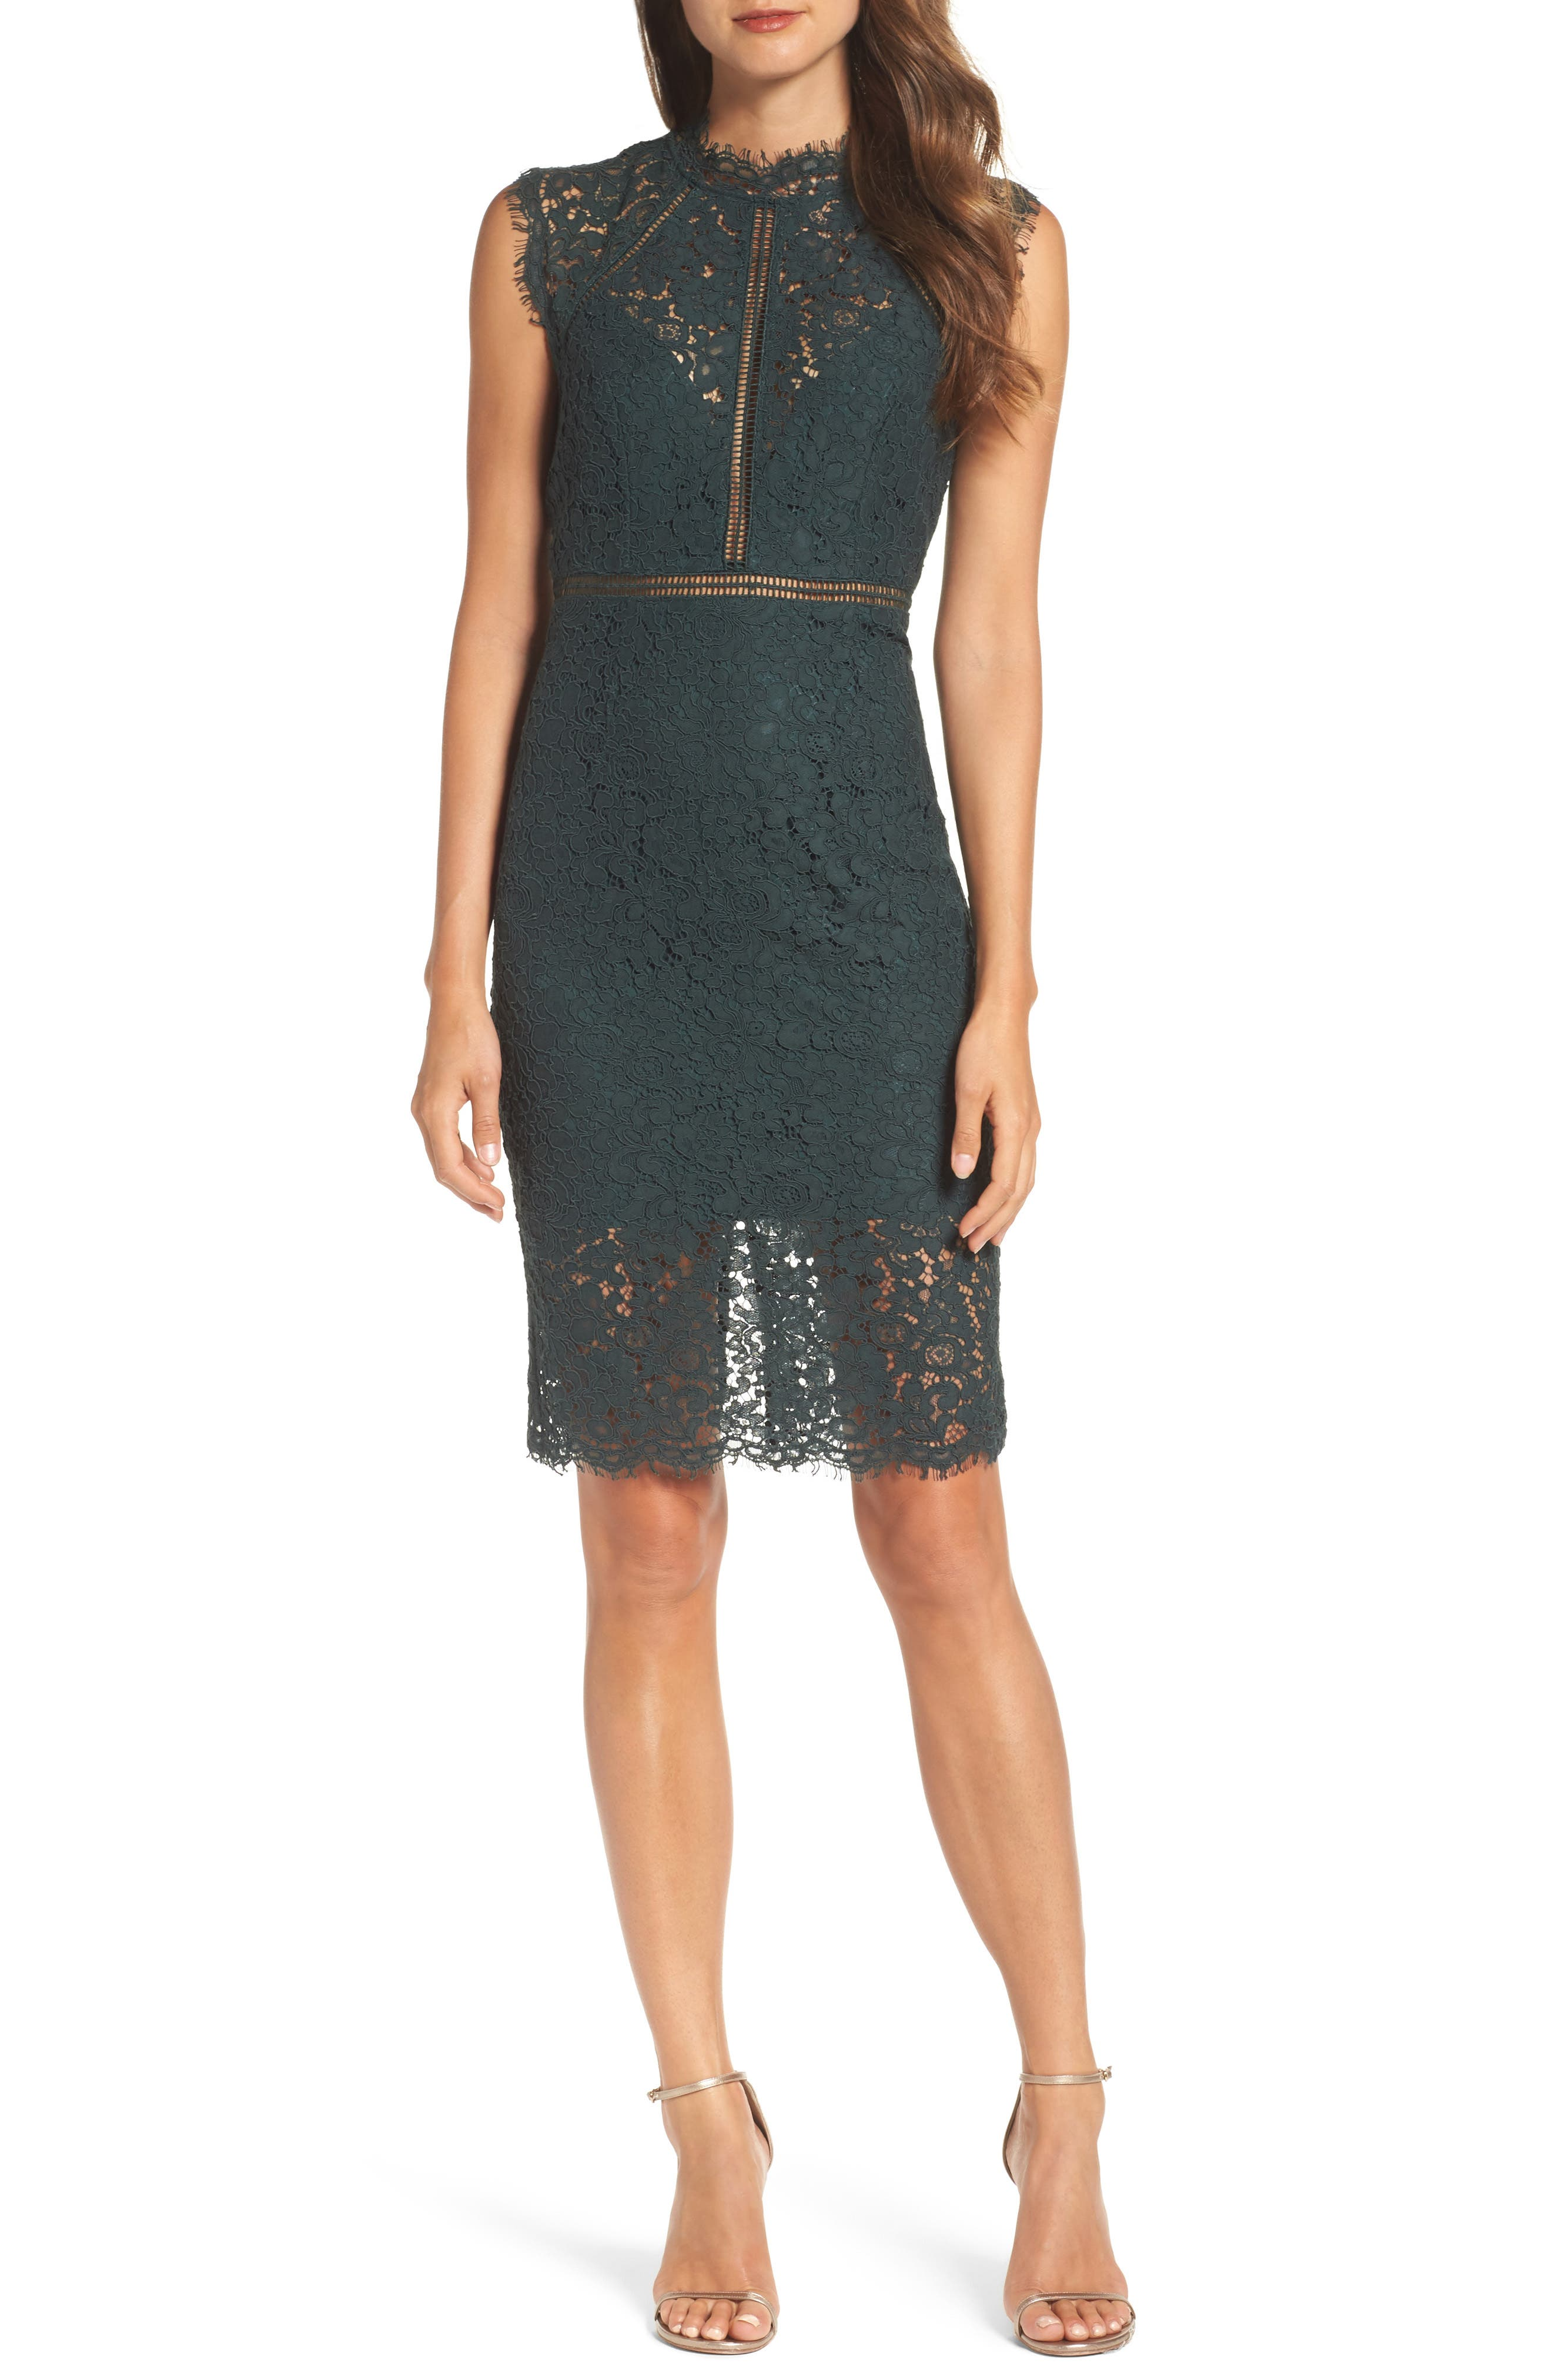 Bardot Lace Sheath Dress, Green